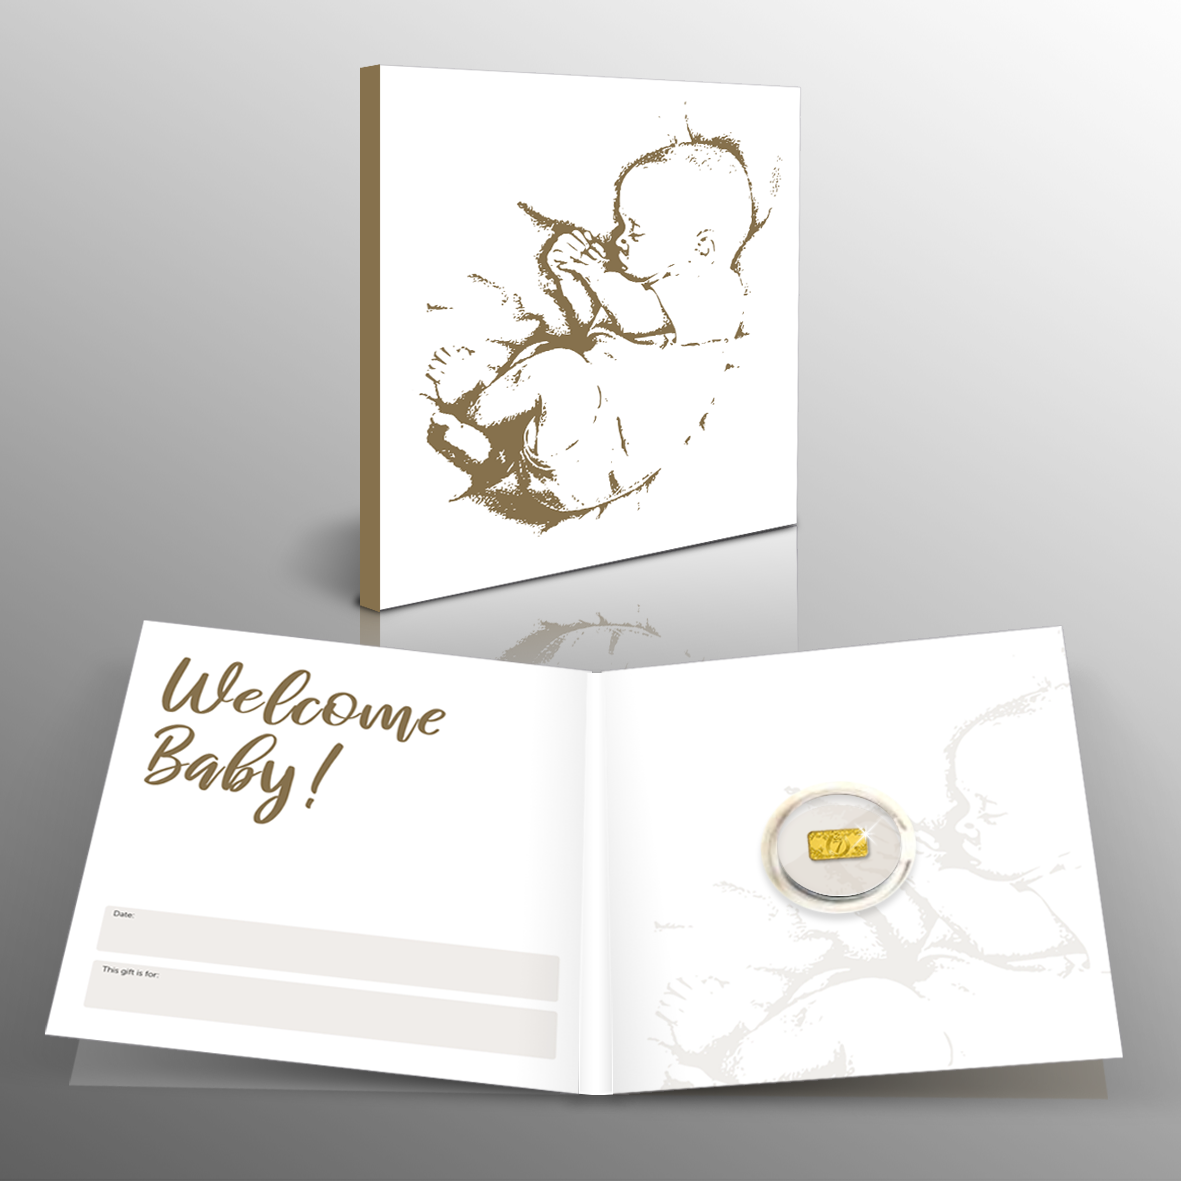 The Pure Gold 'New Baby' Lucky Ingot is an unusual and thoughtful gift that makes for the perfect sentimental keepsake, bringing luck for a lifetime!